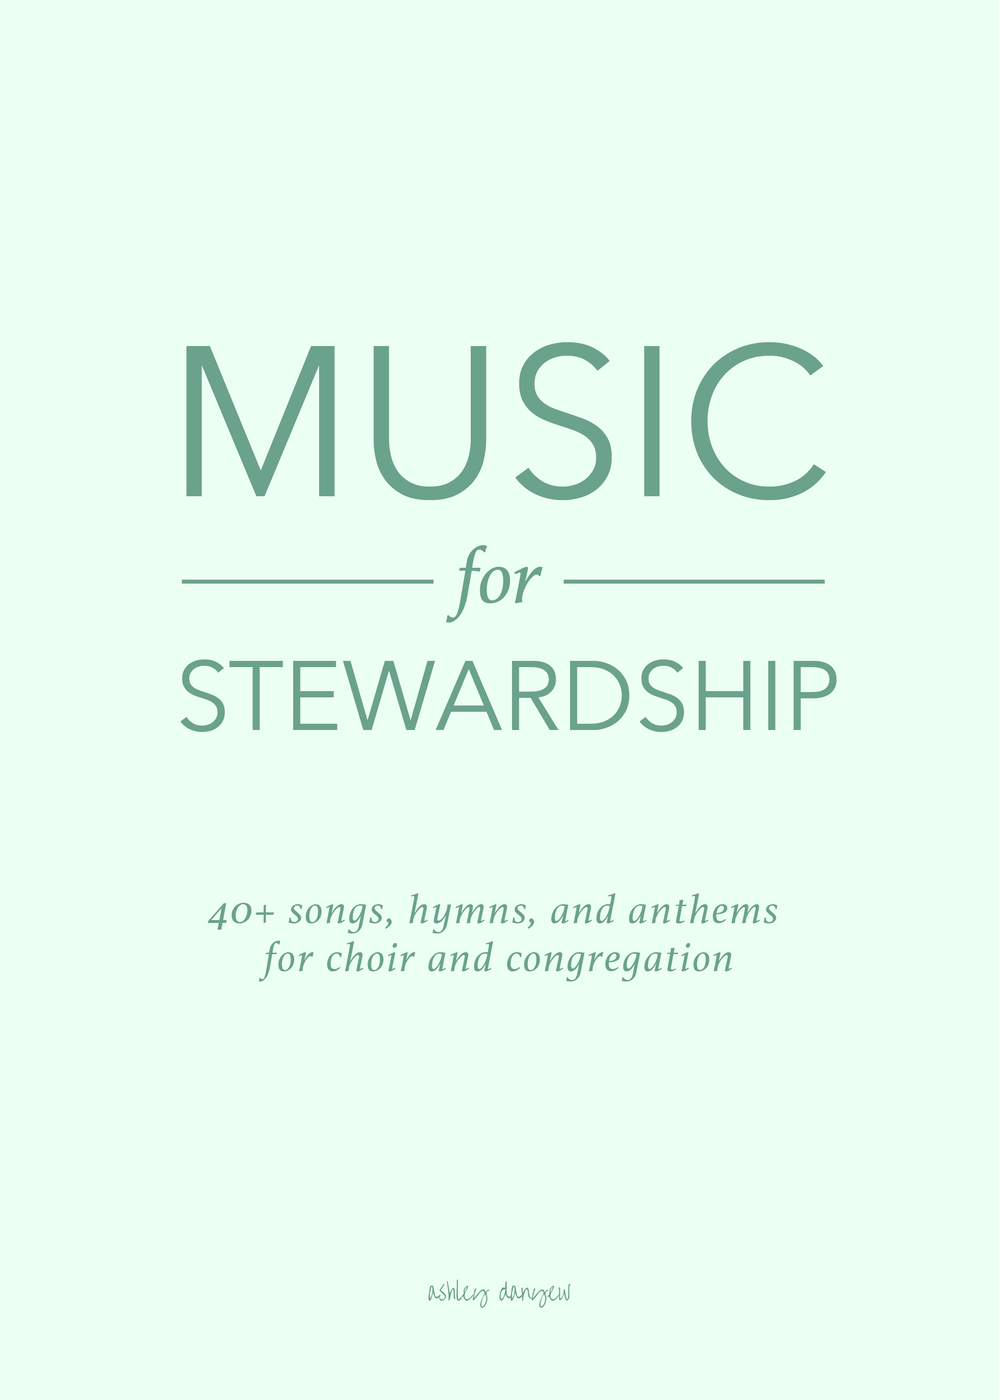 Music for Stewardship - Songs, Hymns, Anthems.png